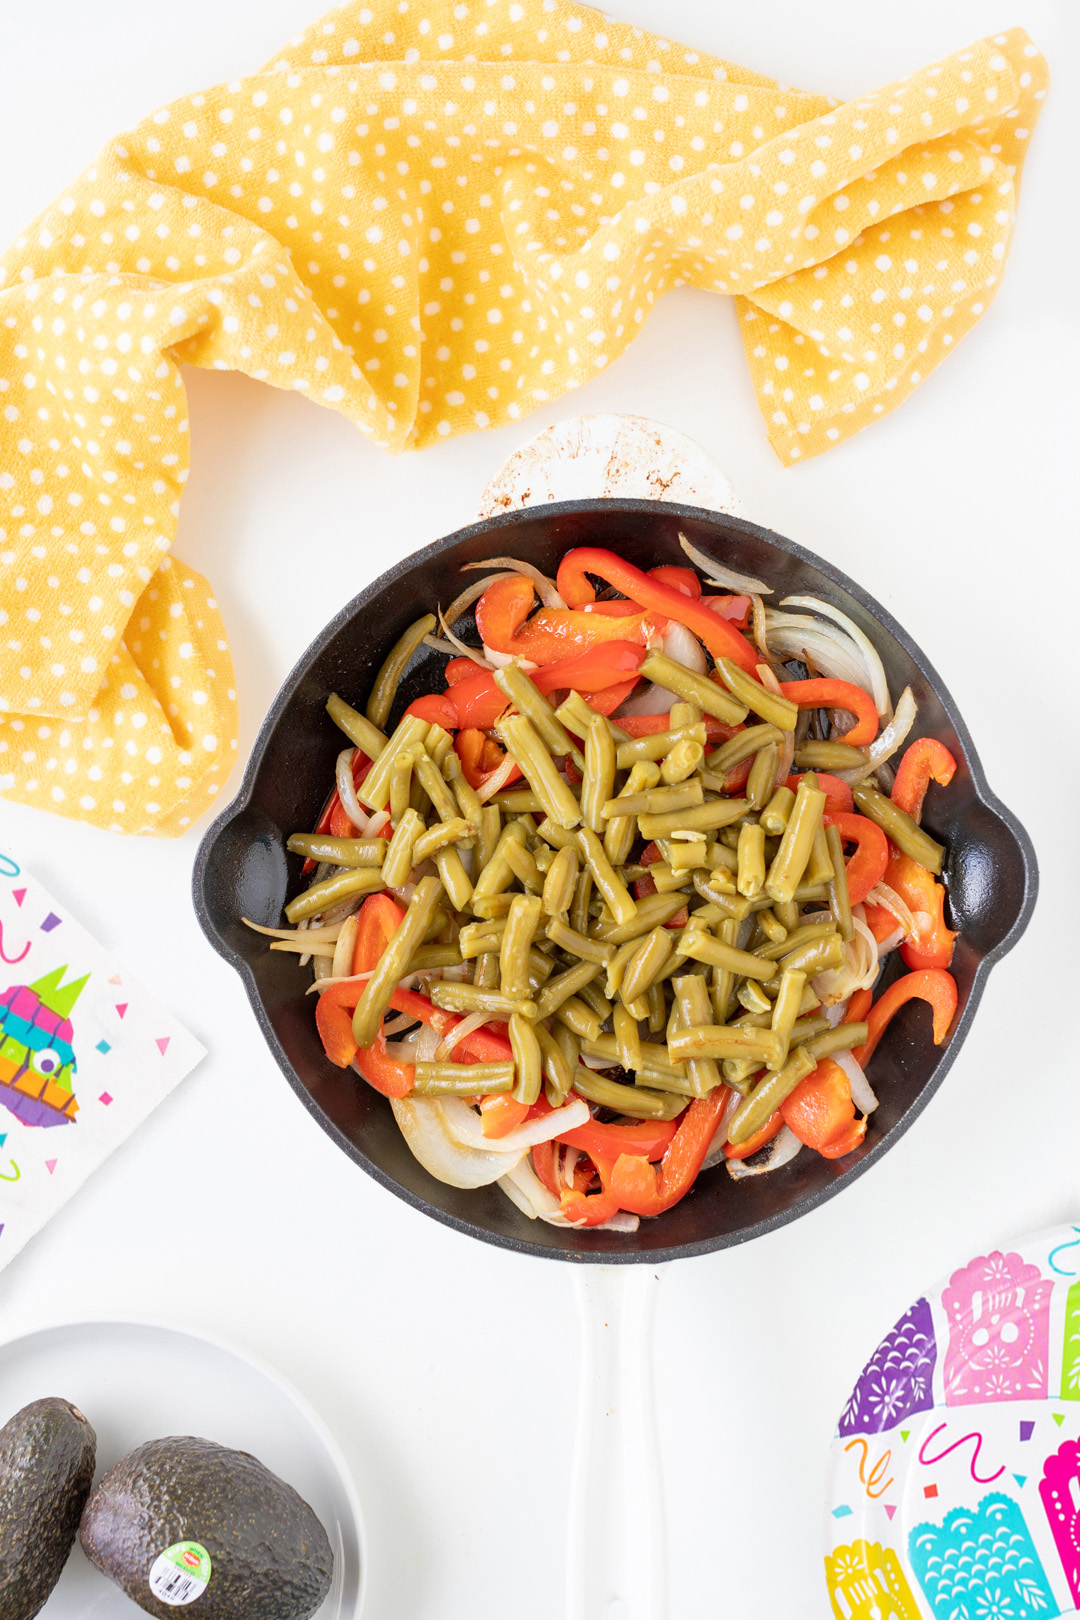 can of green beans added on top of cooked peppers and onions in a skillet